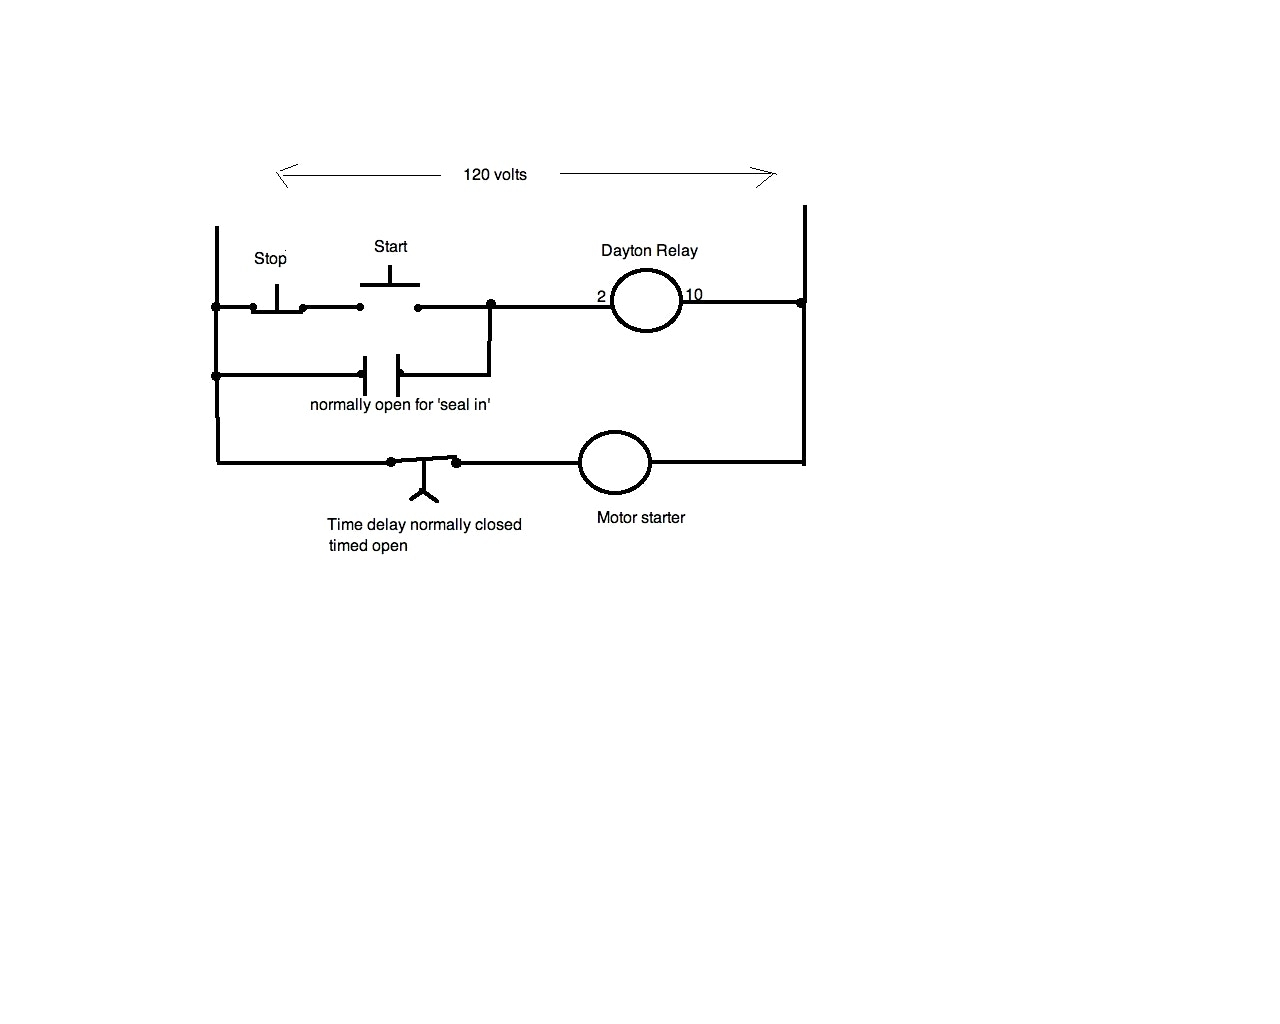 hight resolution of dayton time delay relay wiring diagram